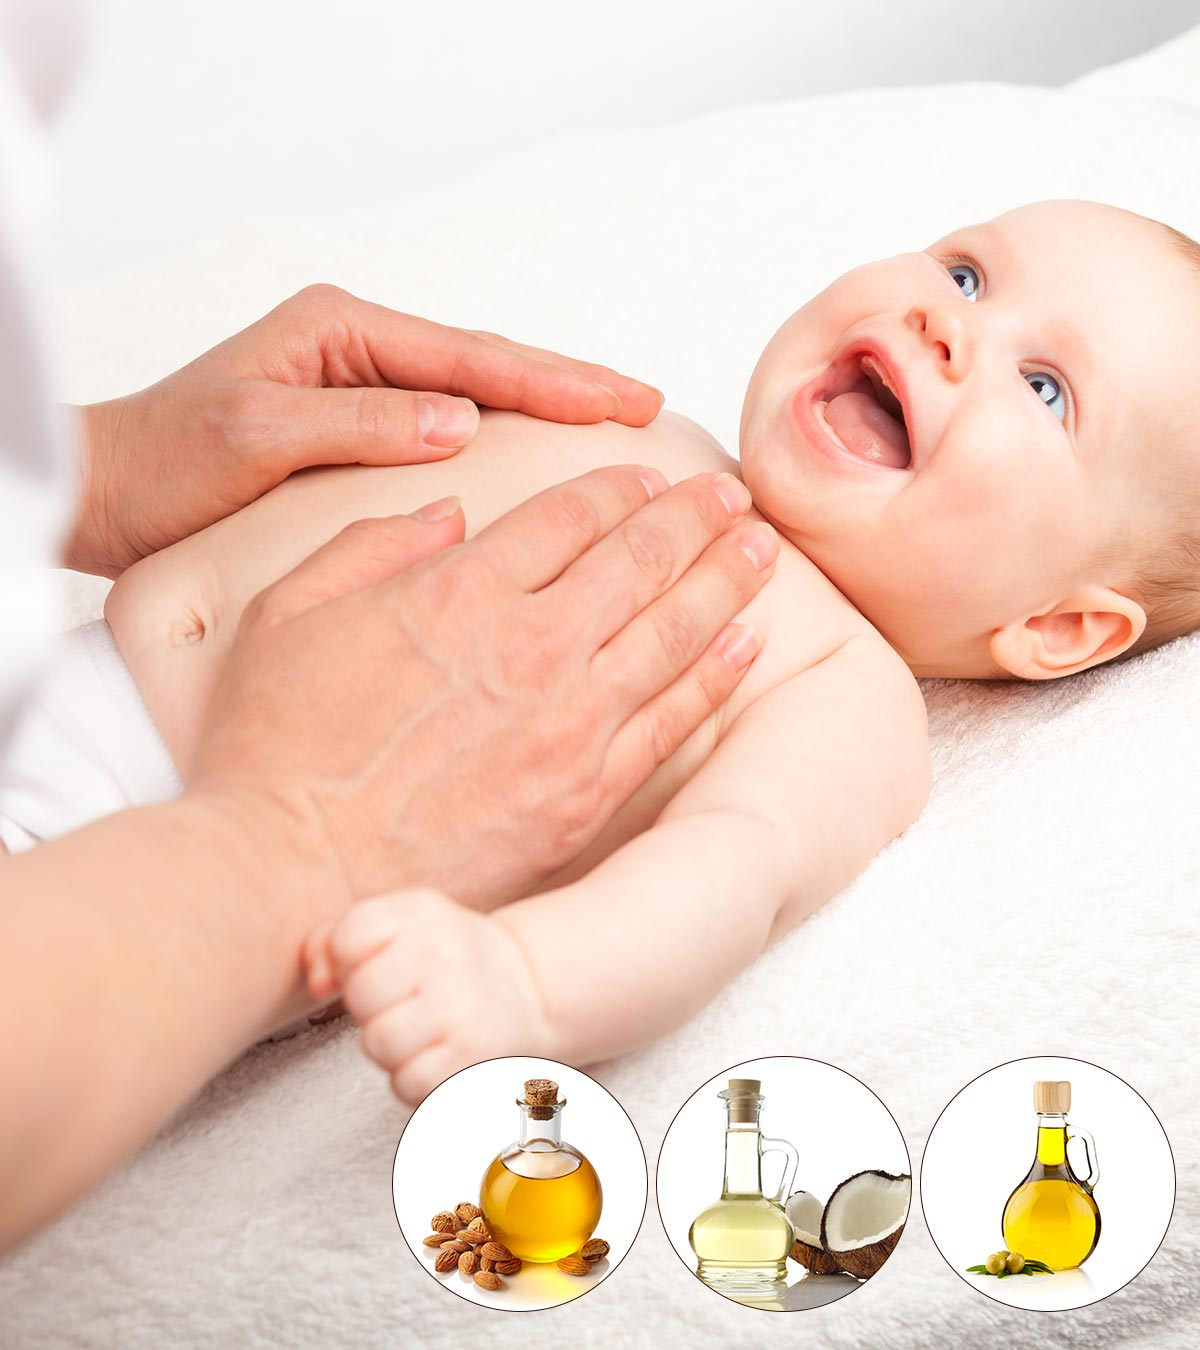 top 10 baby massage oils: know what's best for your baby?